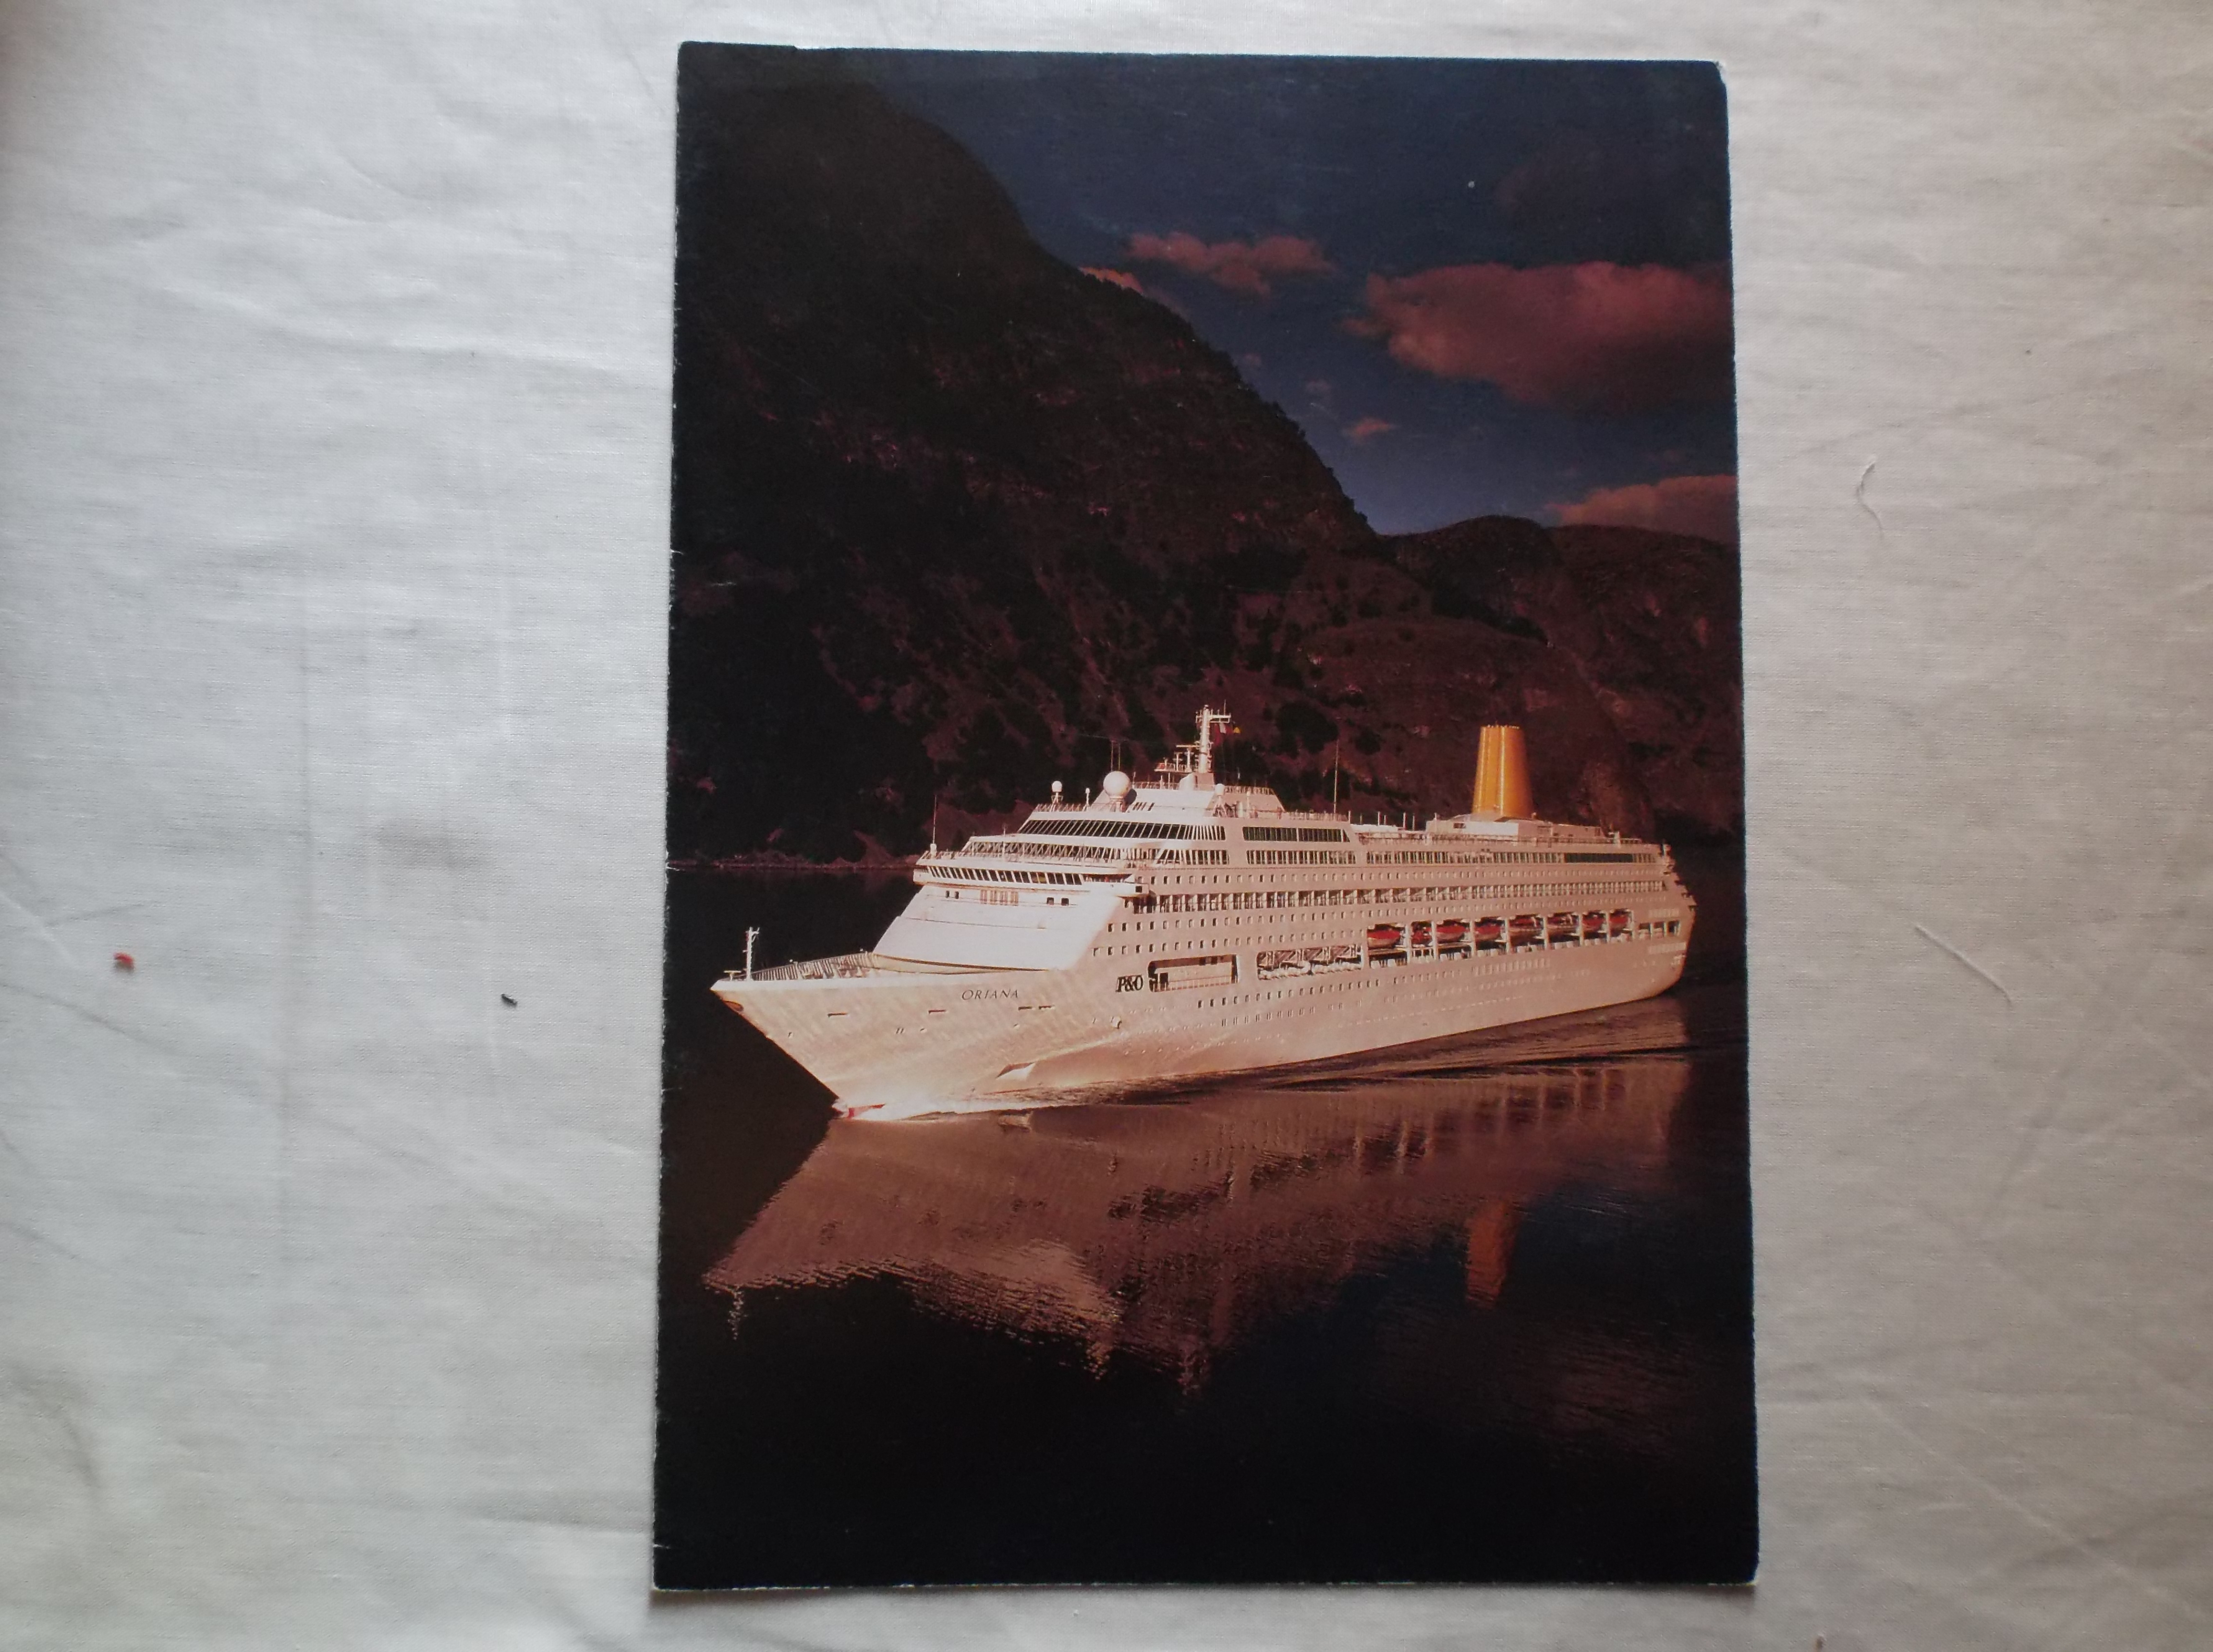 DINNER MENU FROM THE P&O LINE VESSEL THE ORIANA DATED NOVEMBER 1995